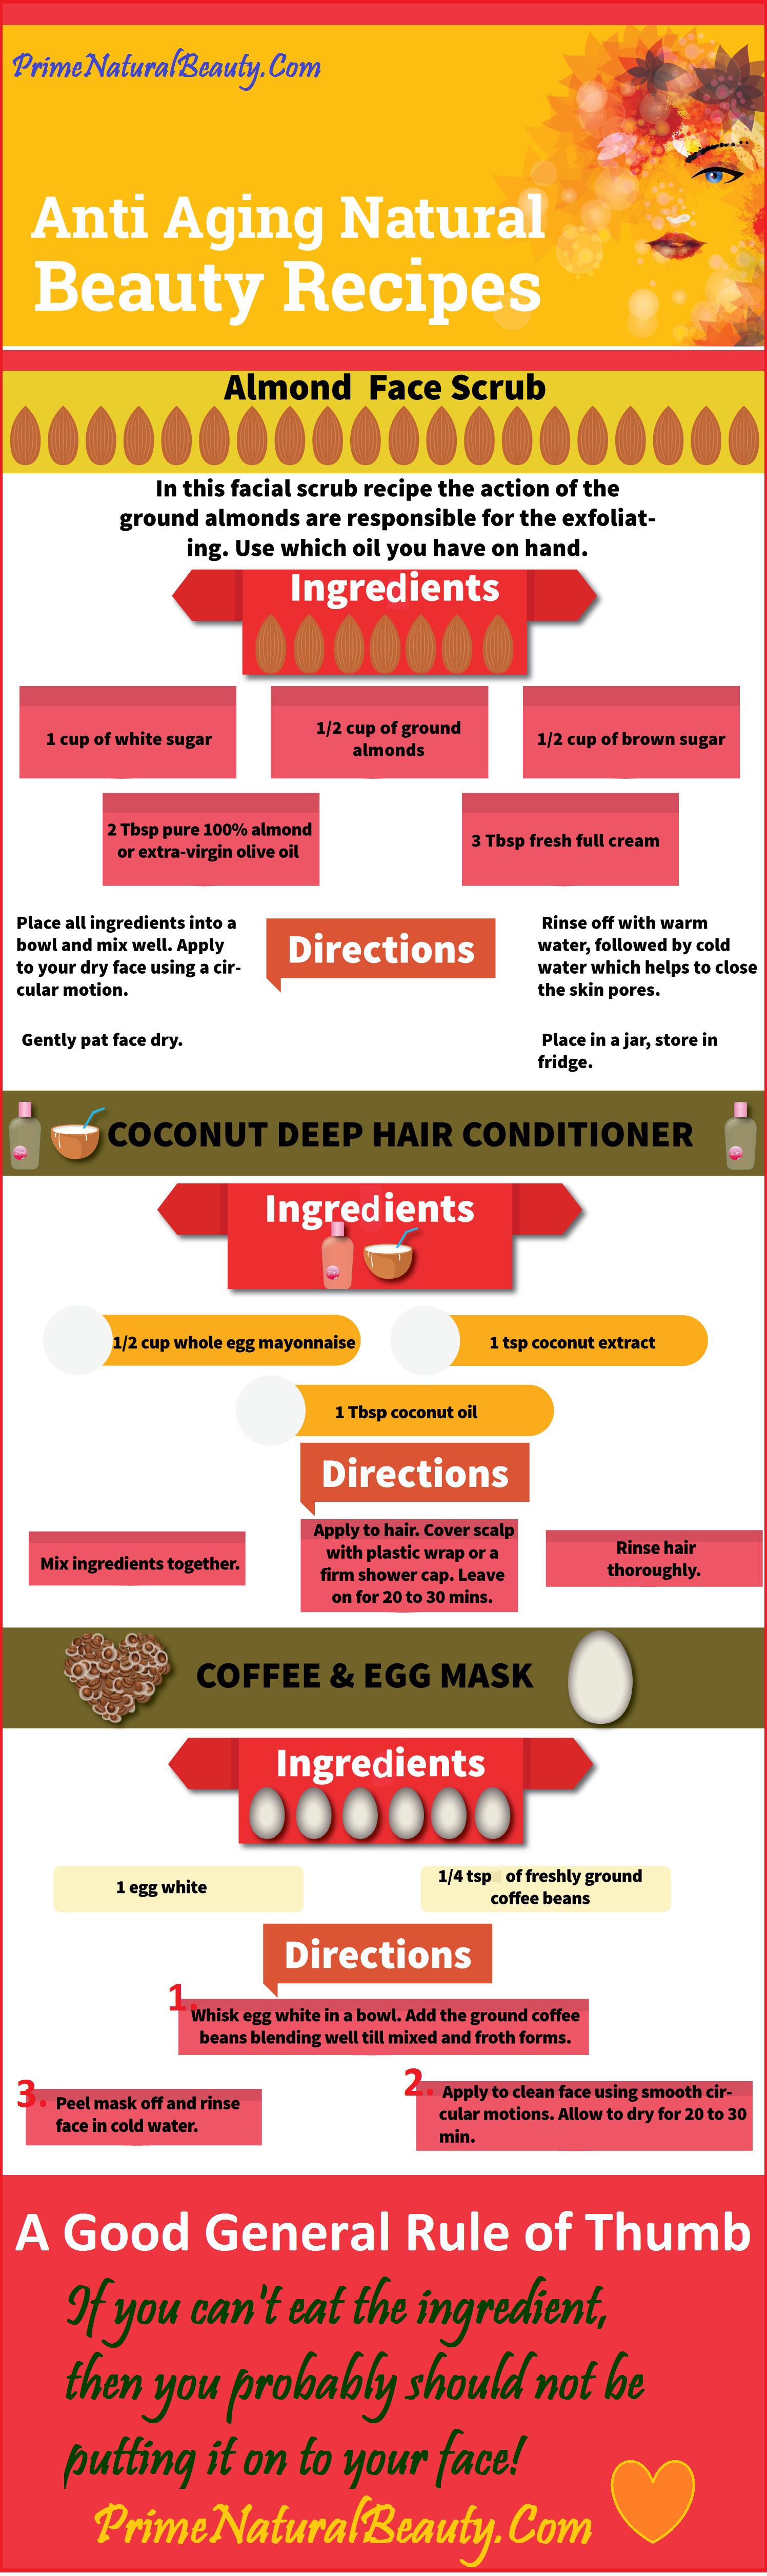 Anti Aging Natural Beauty Recipes INFOGRAGHIC